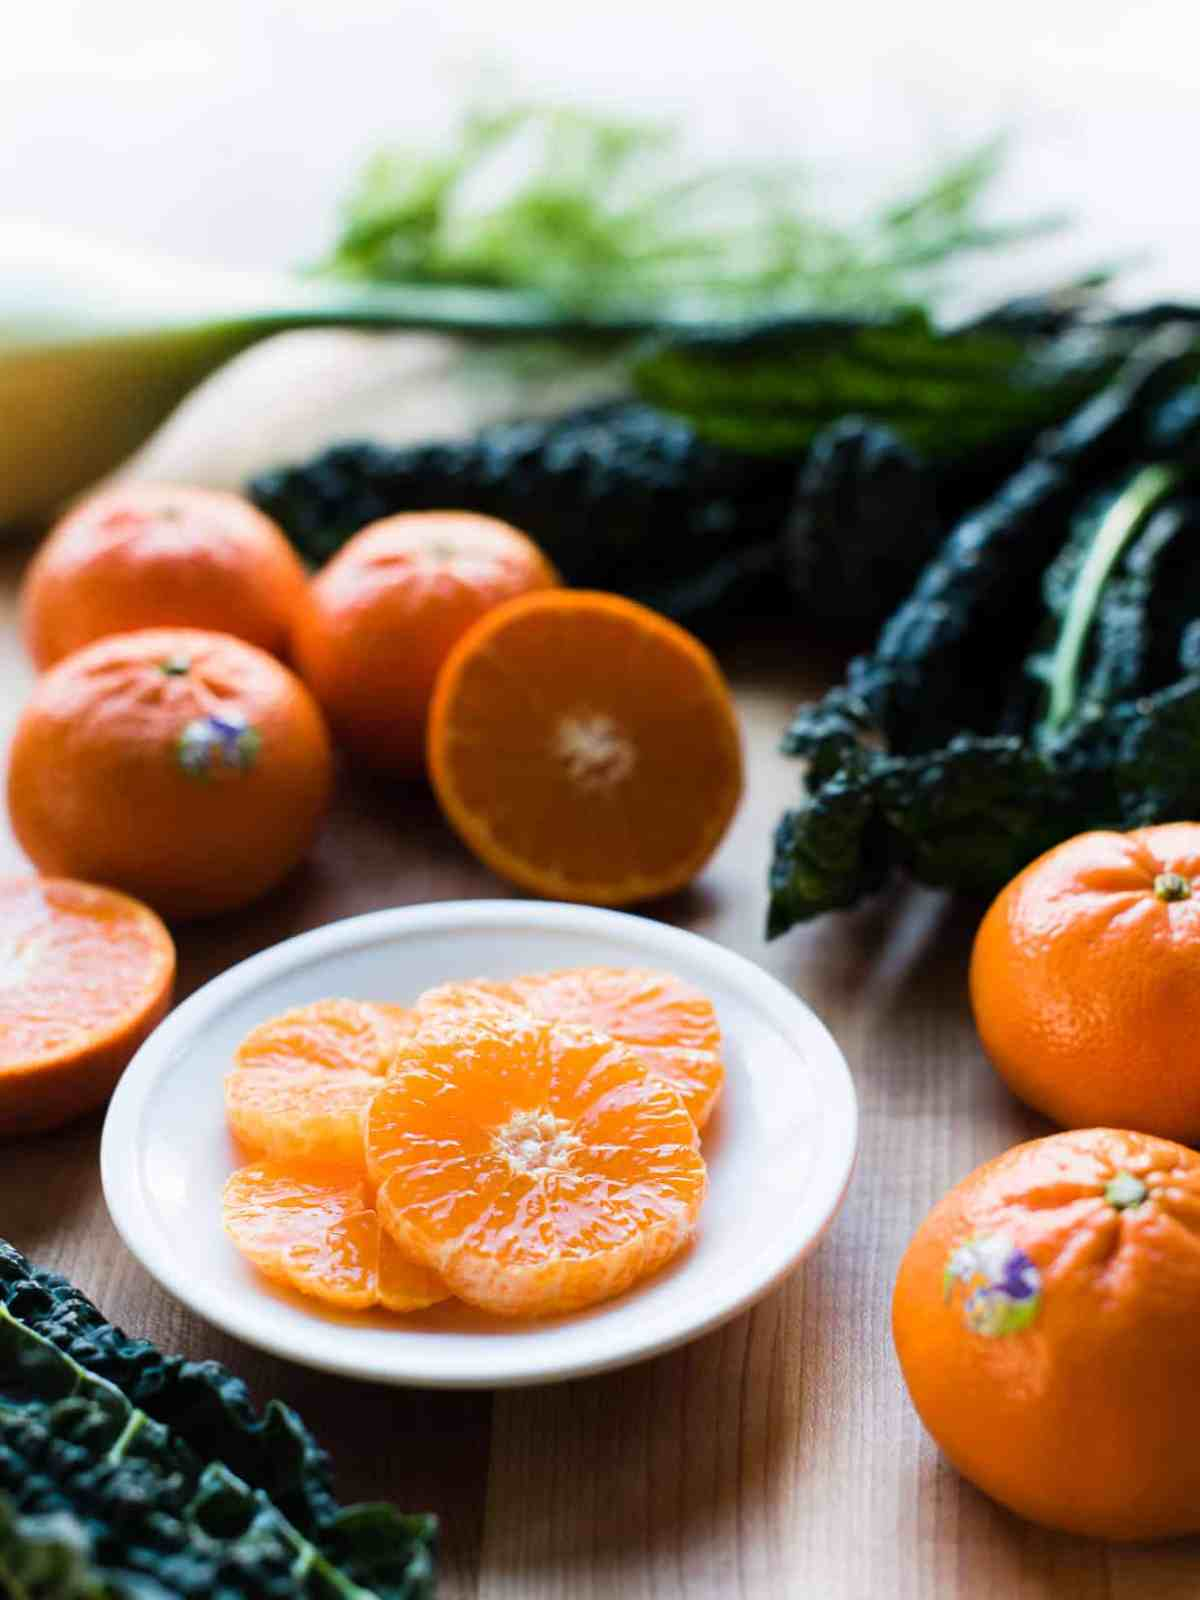 slices of Halos Mandarin Oranges on a white plate with kale in the background